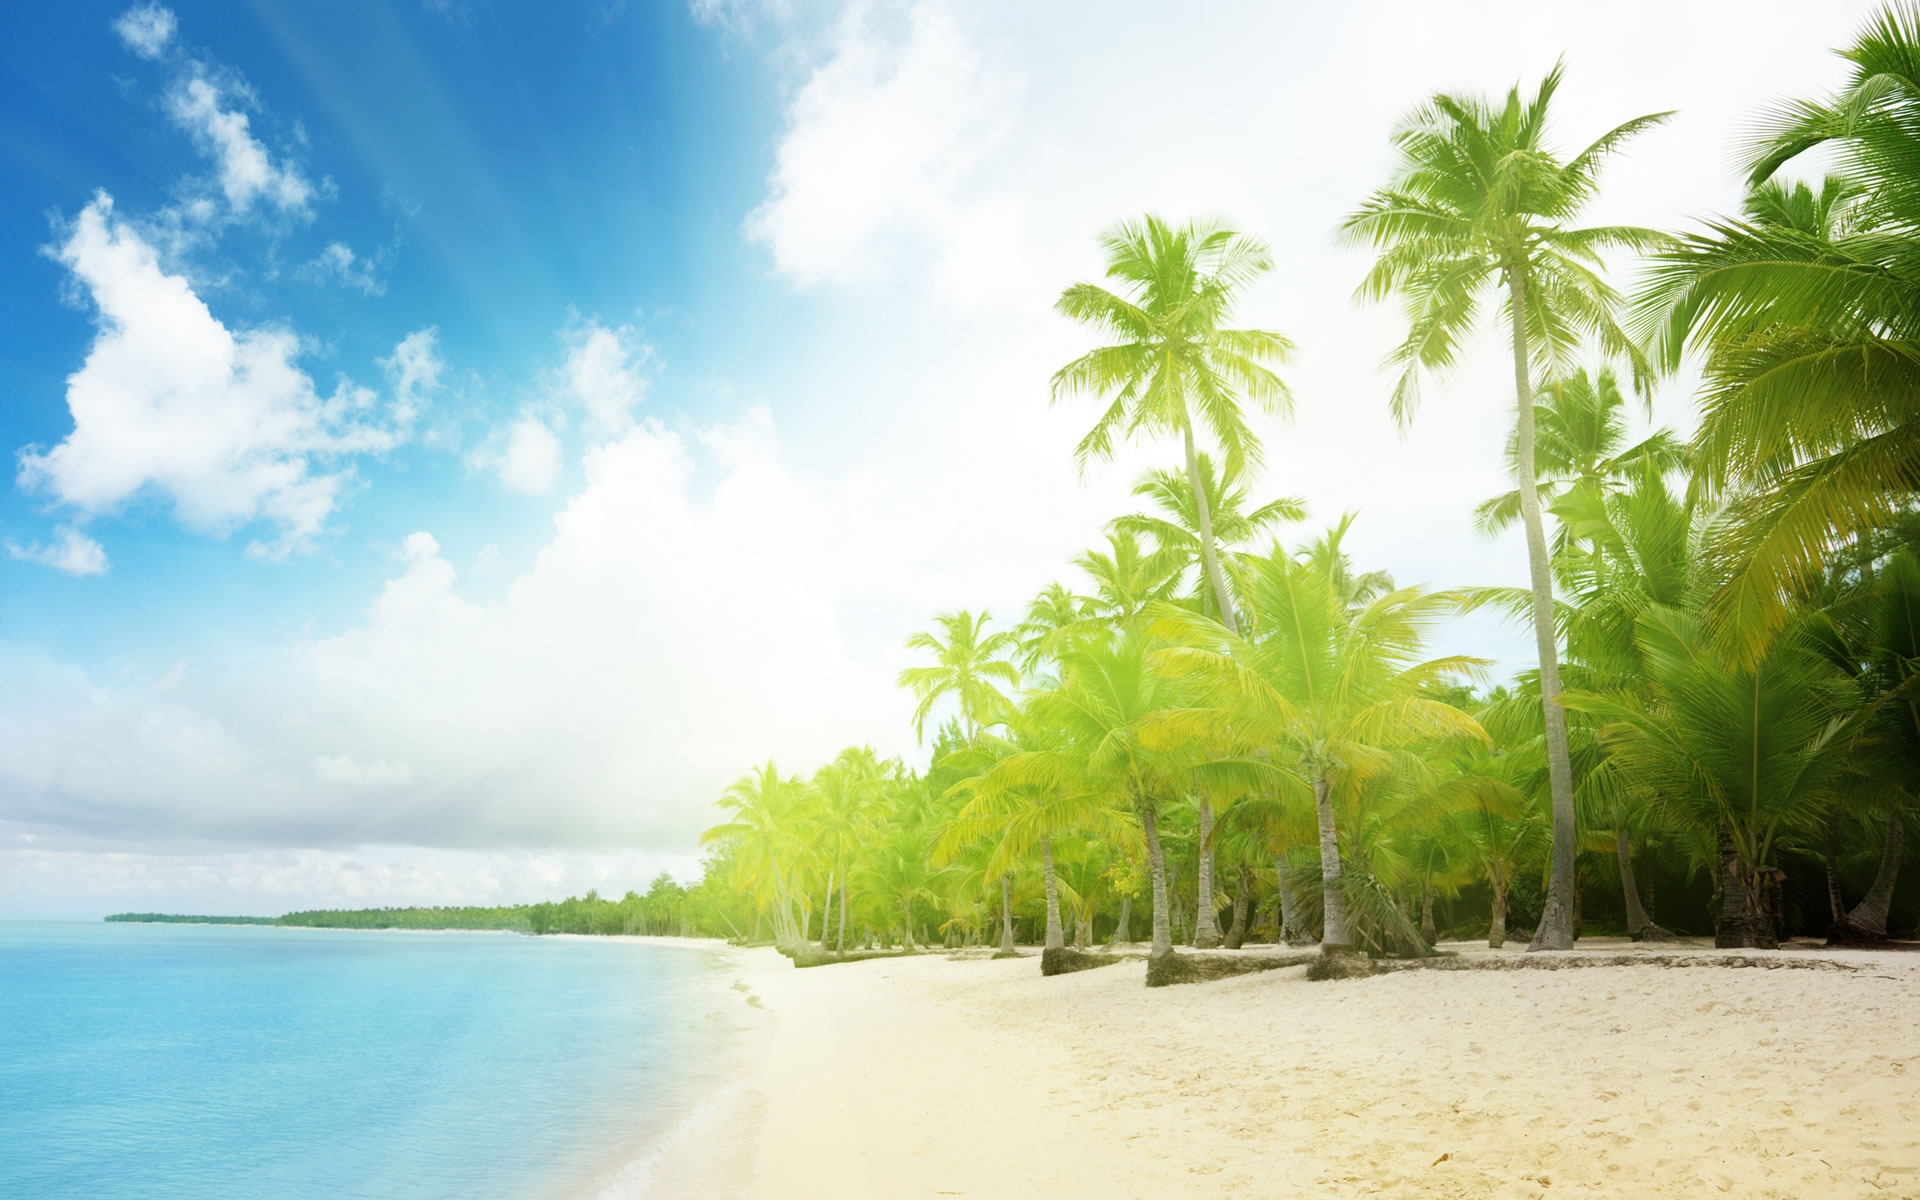 sunny beach wallpaper background 4236750 1920x1200 all